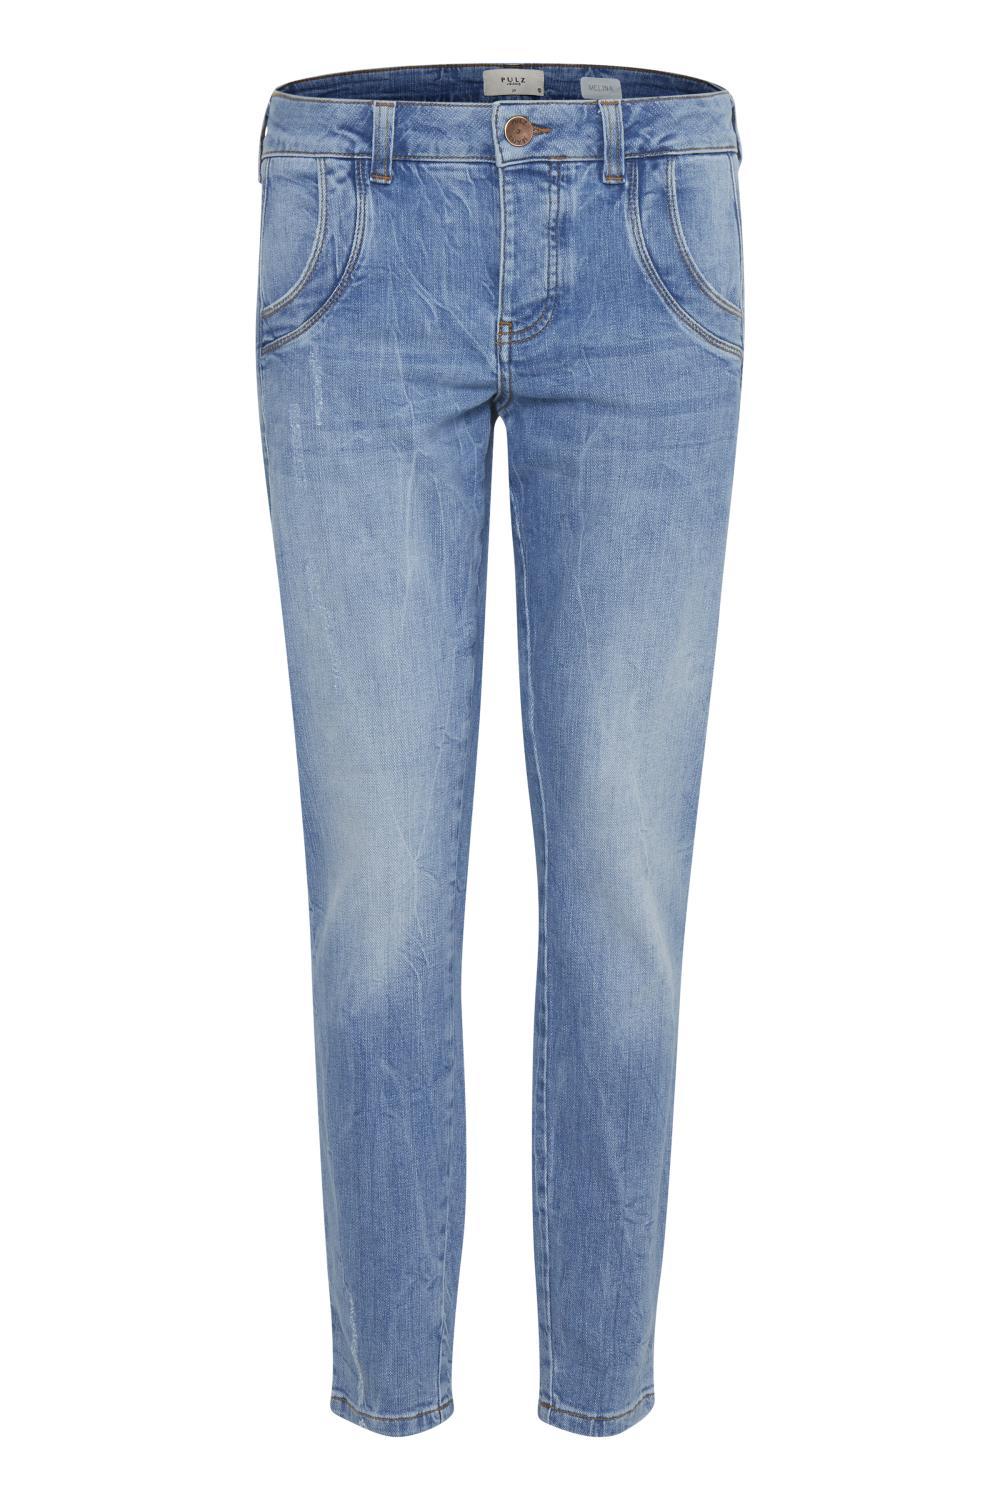 Pulz Melina Jeans, light blue denim